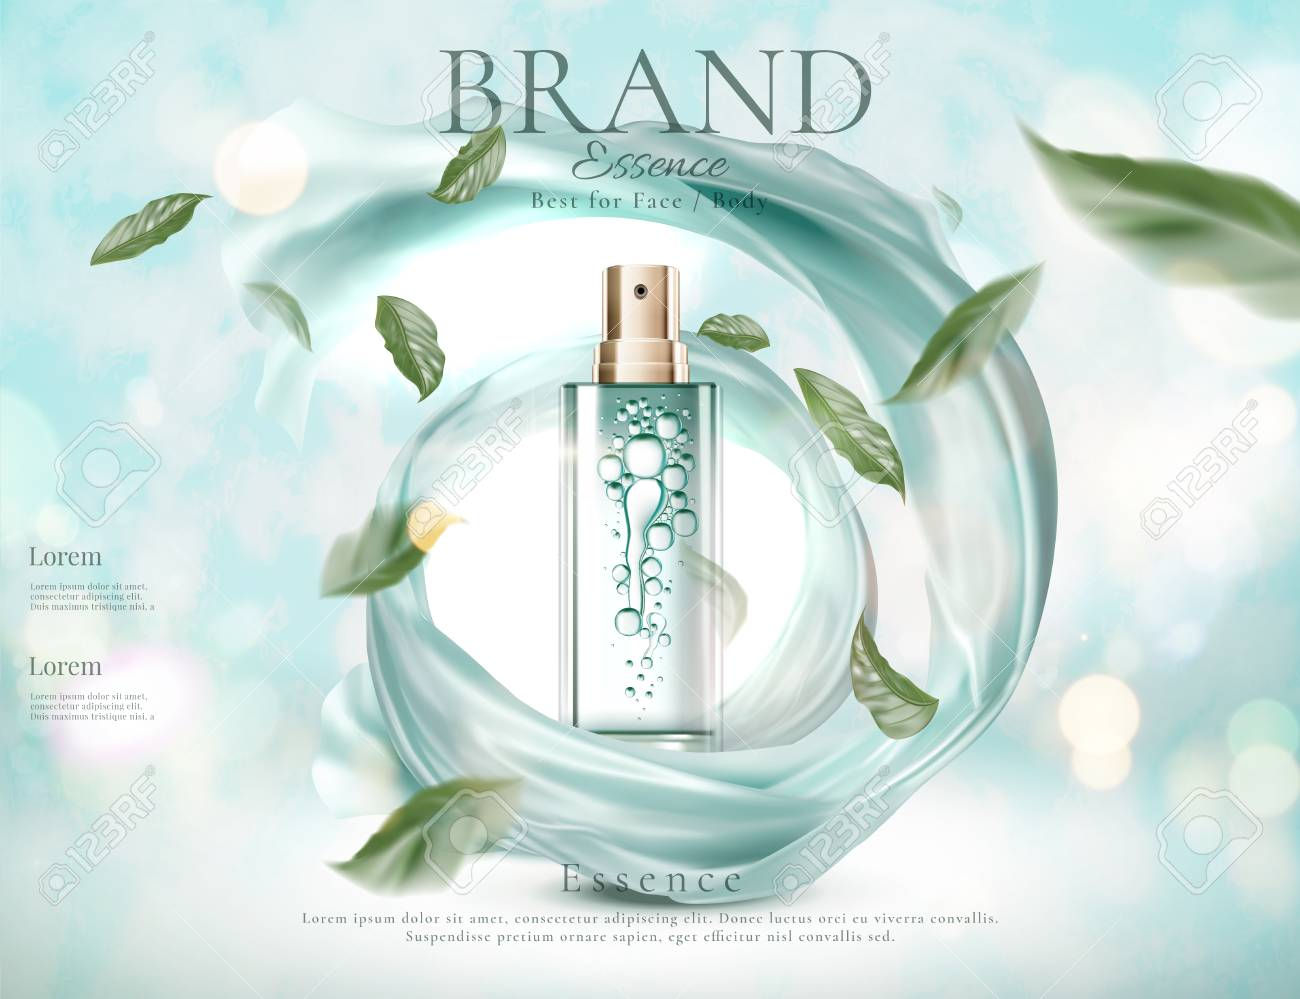 Refreshing skincare spray with flying green leaves and swirling satin in 3d illustration on light blue glitter background - 111636702